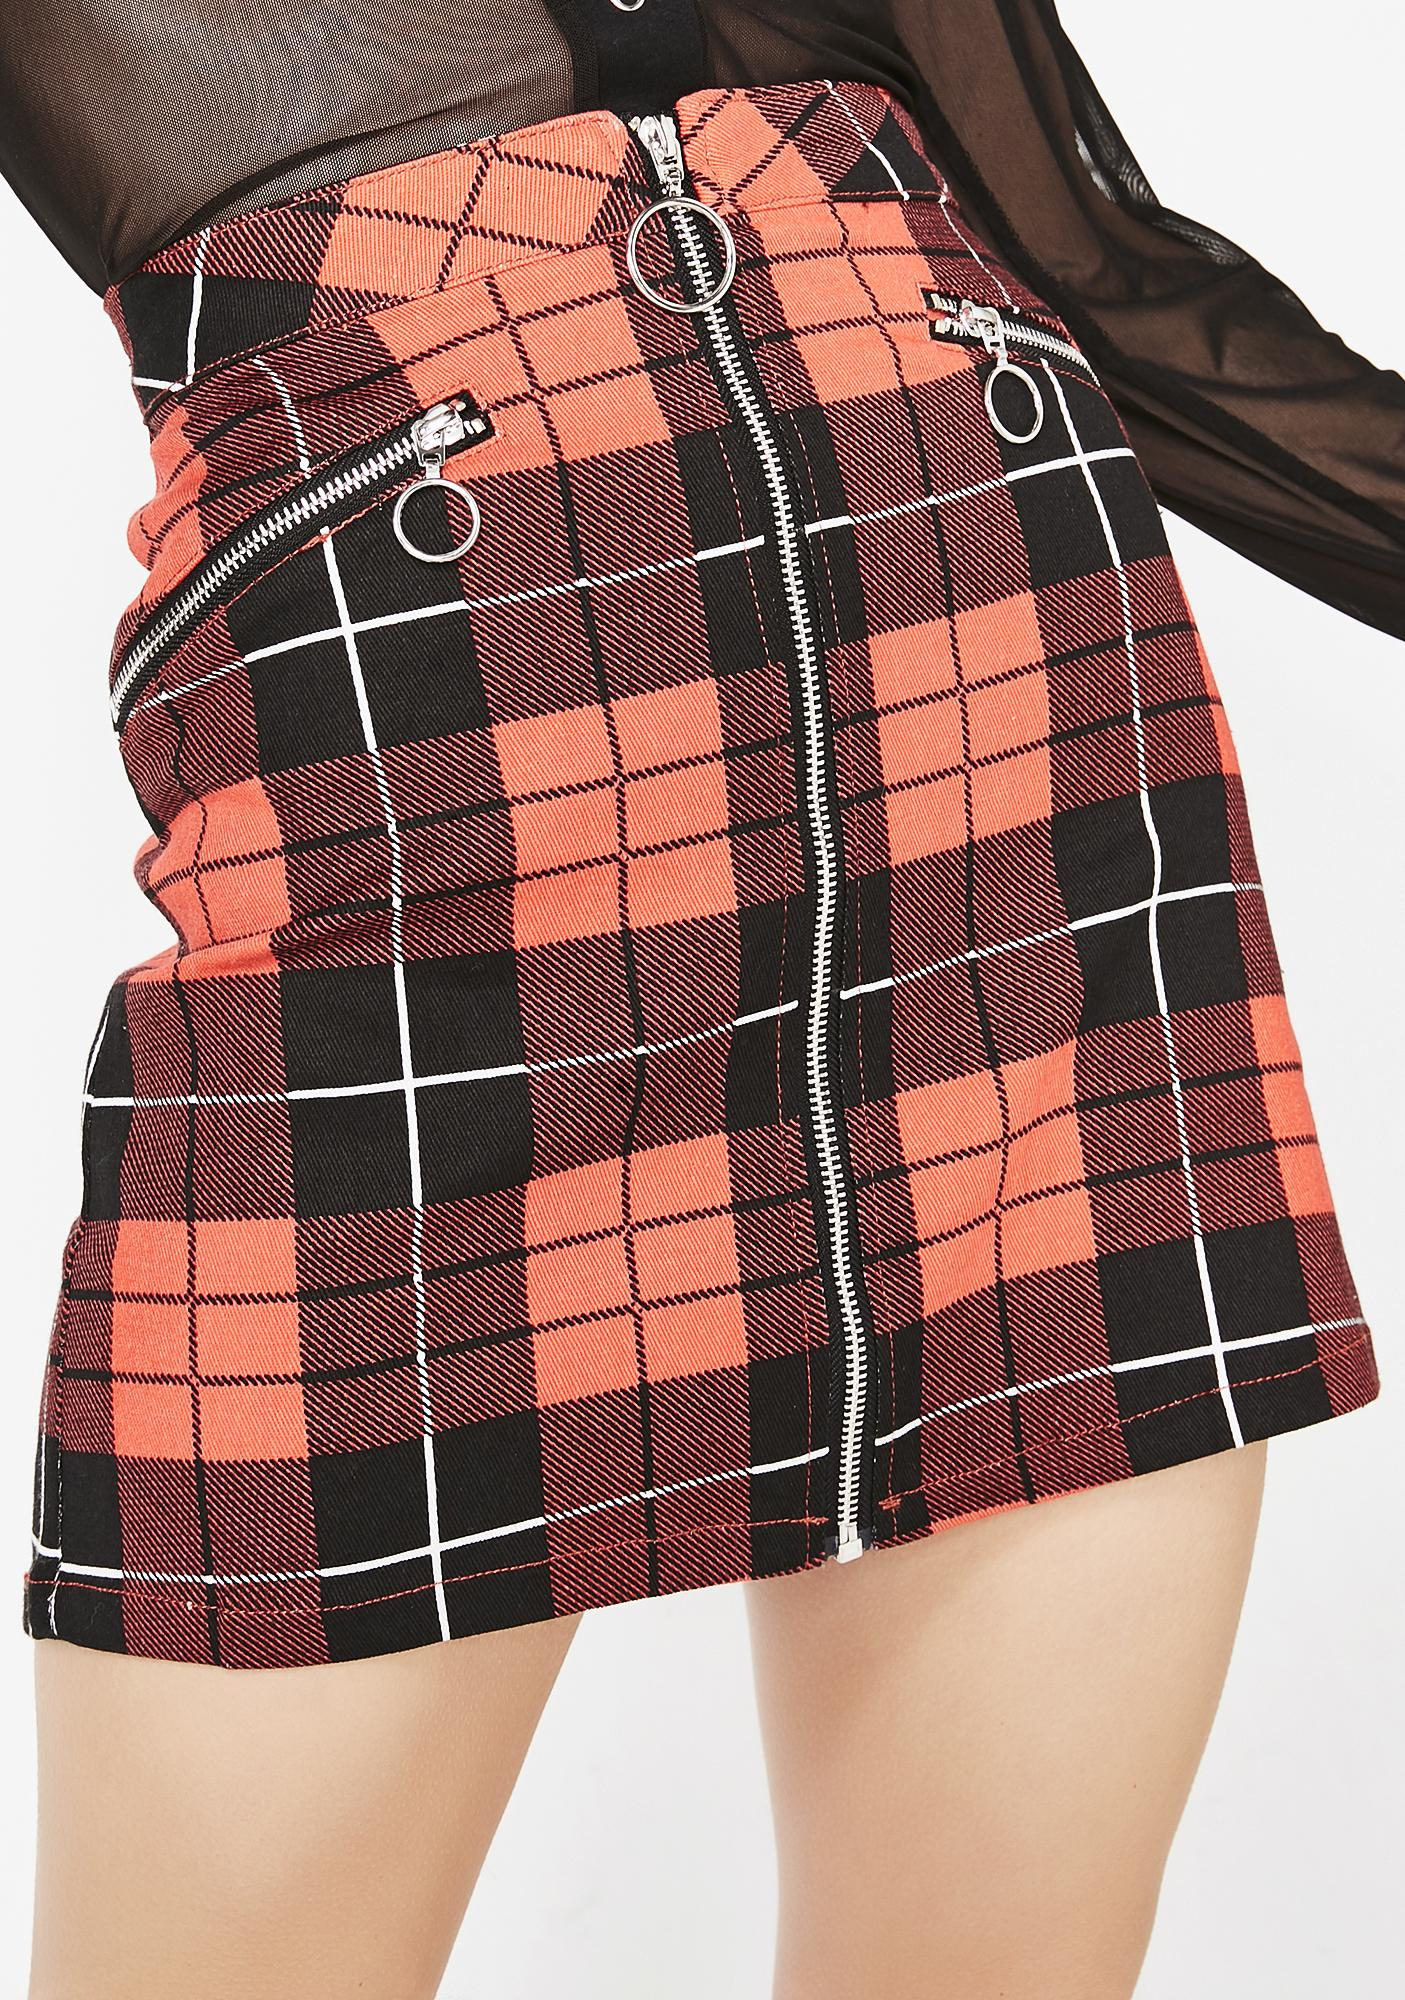 Anti Authority Mini Skirt by